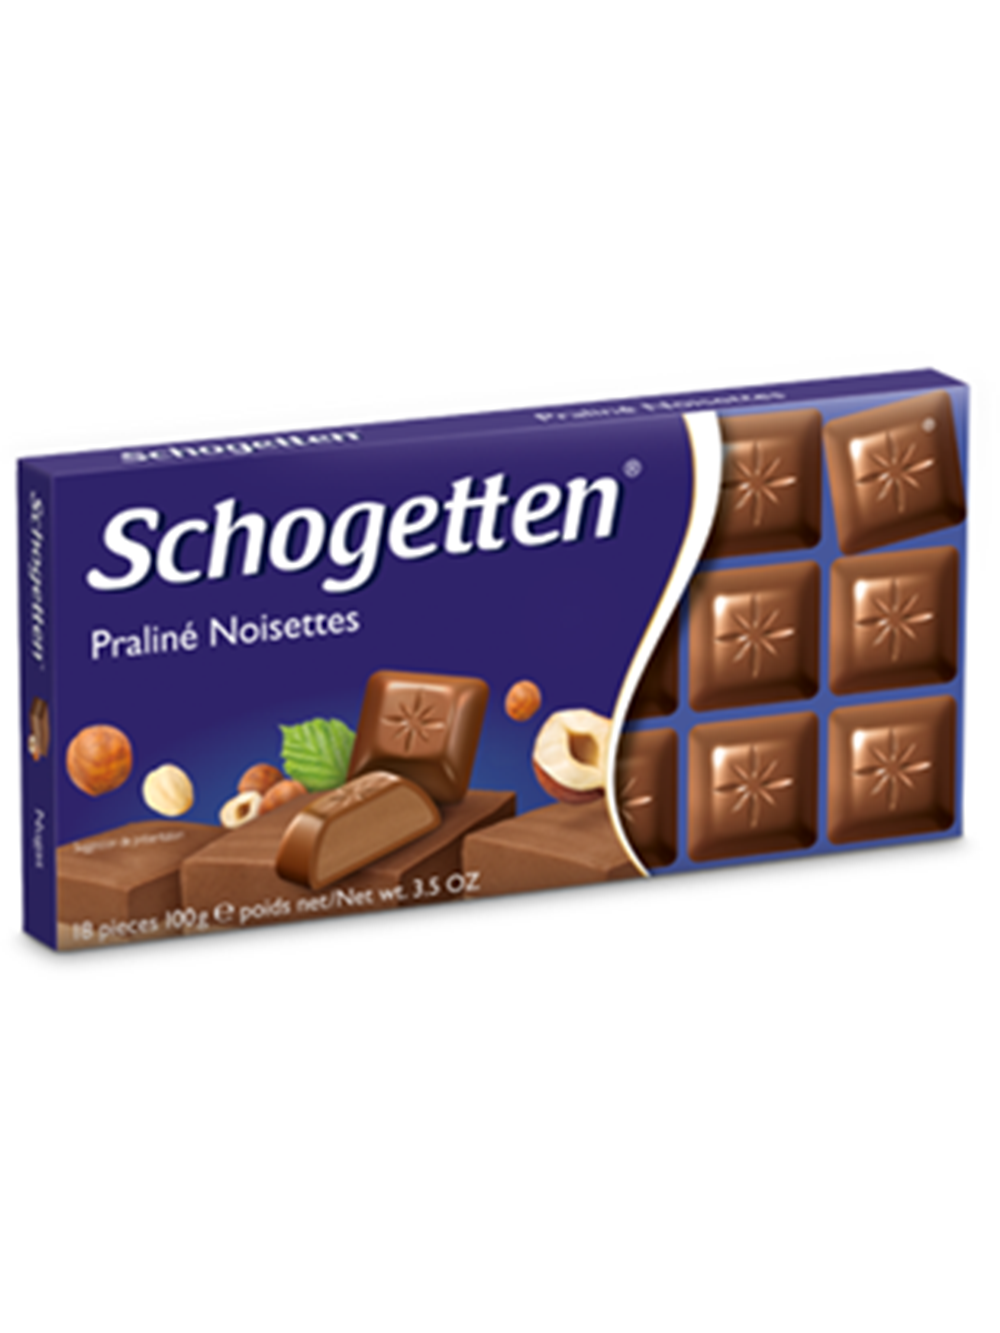 Wholesale Schogetten Pralin Noisettes